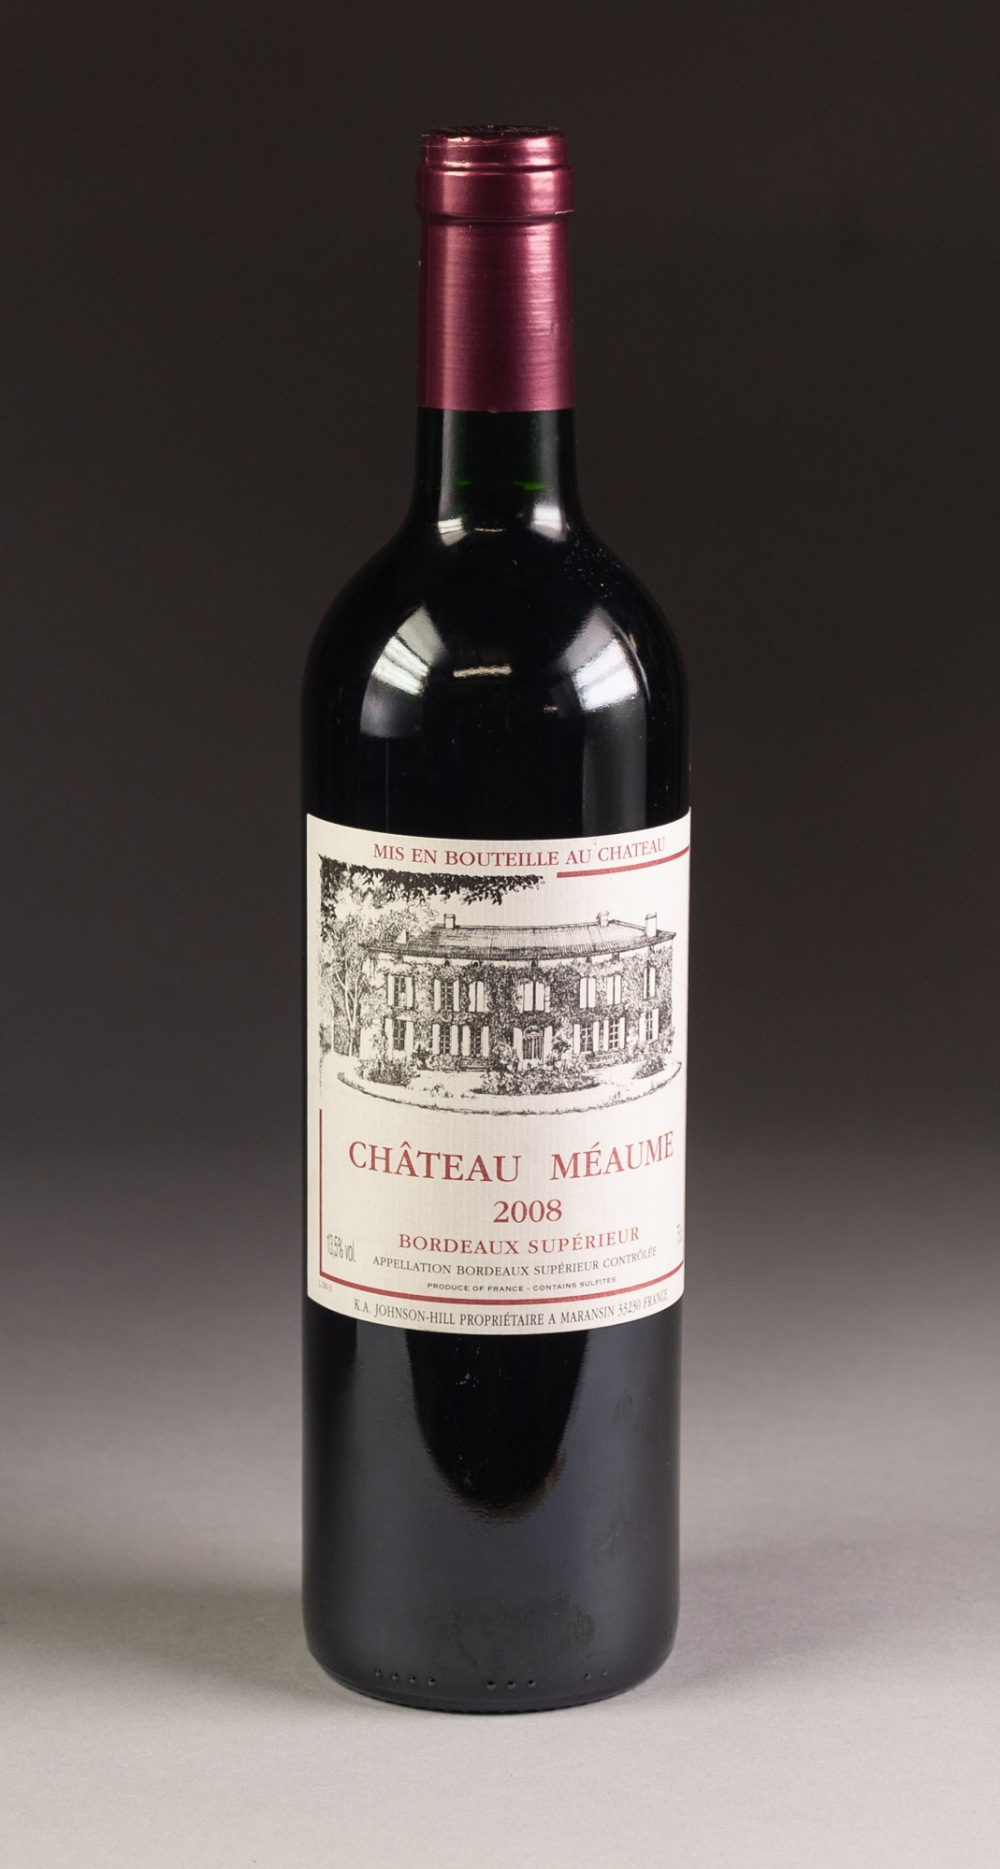 Lot 40 - BOTTLE OF CHATEAU MEAUME, BORDEAUX SUPERIEUR, 2008